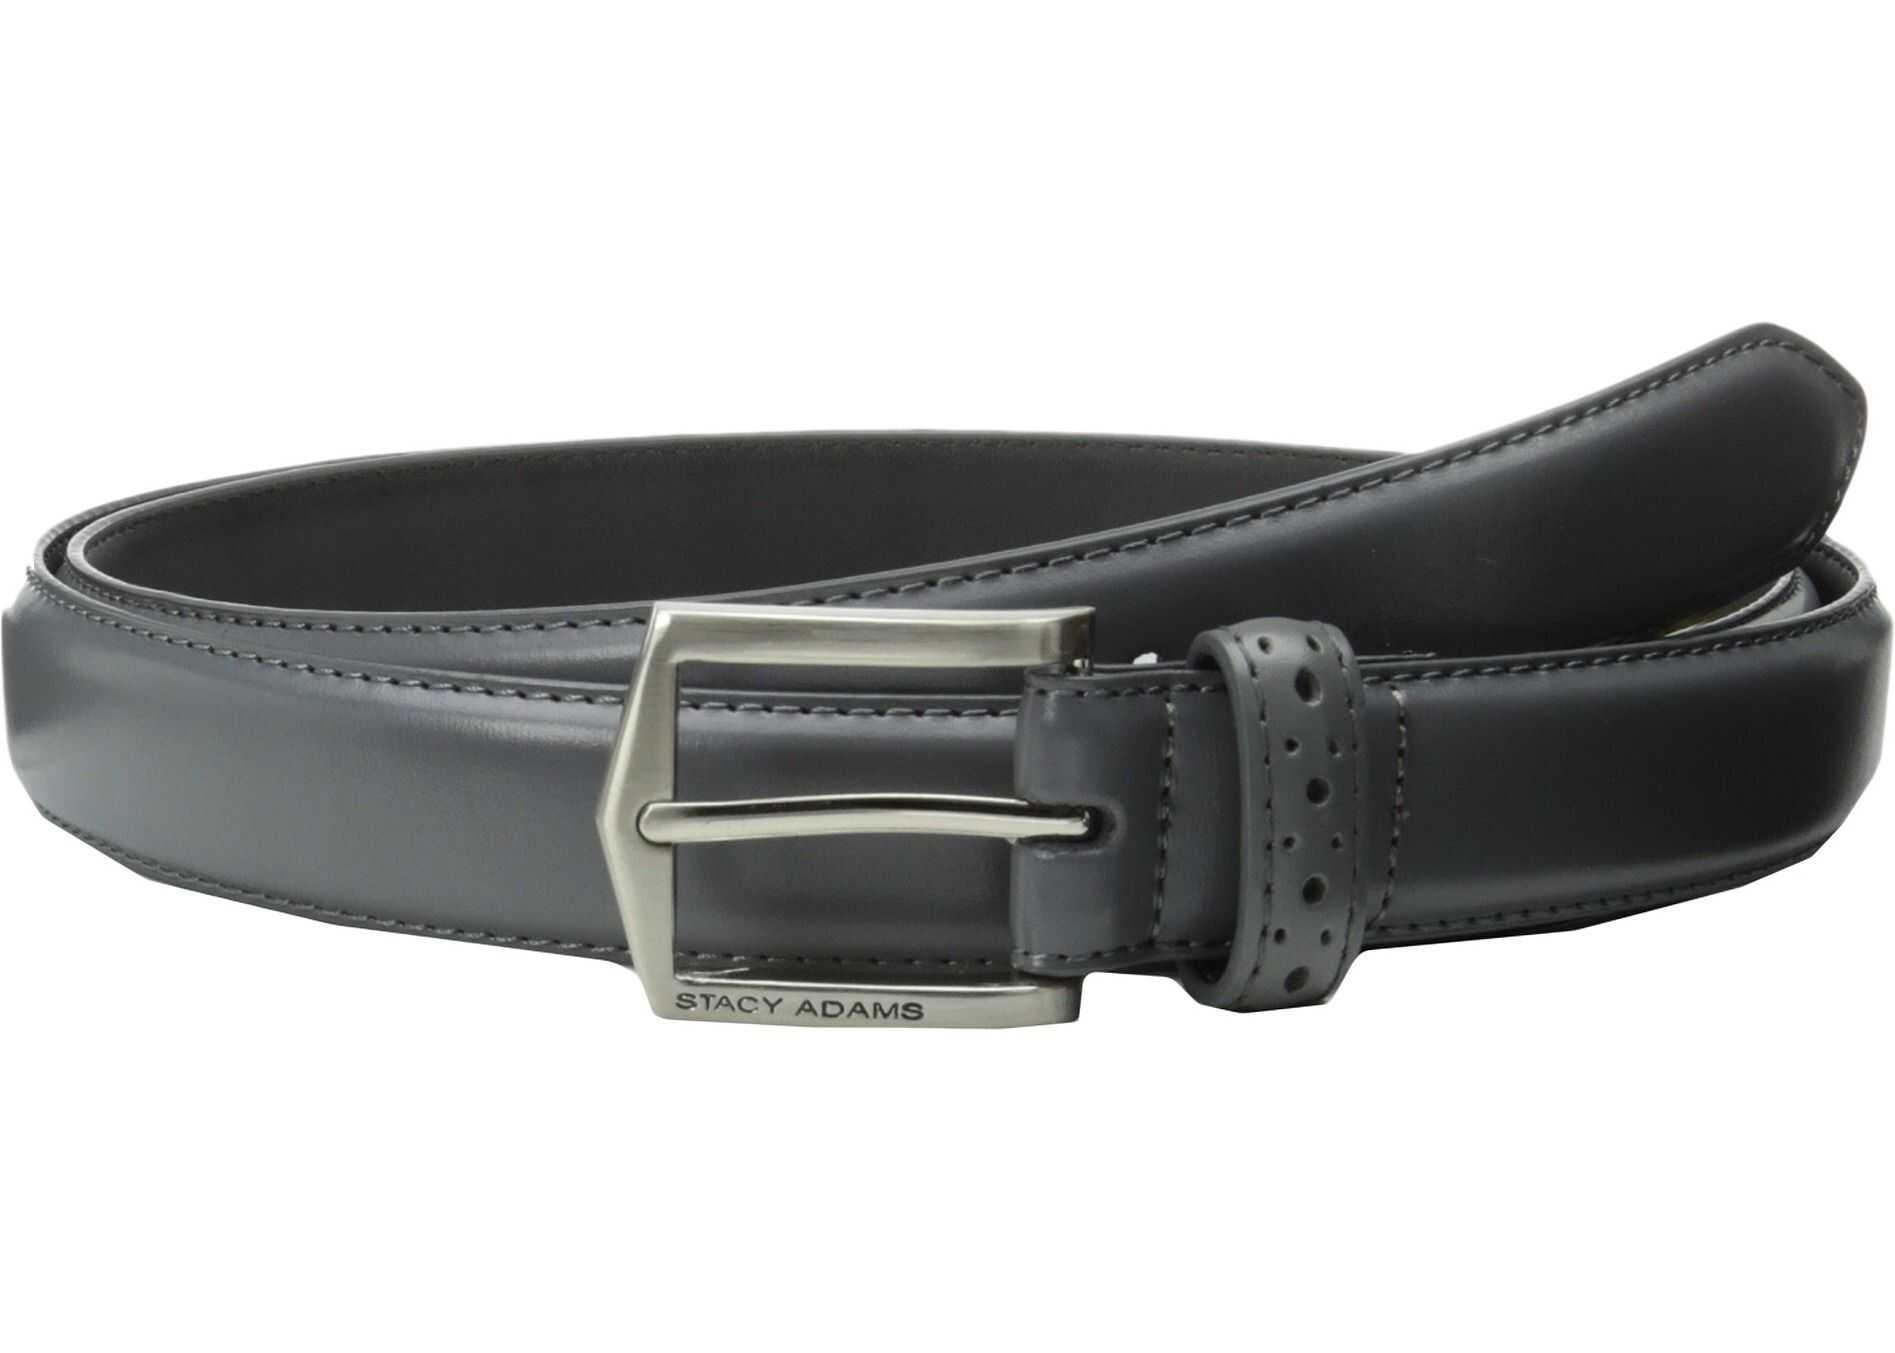 Stacy Adams 30mm Pinseal Leather Belt X Gray